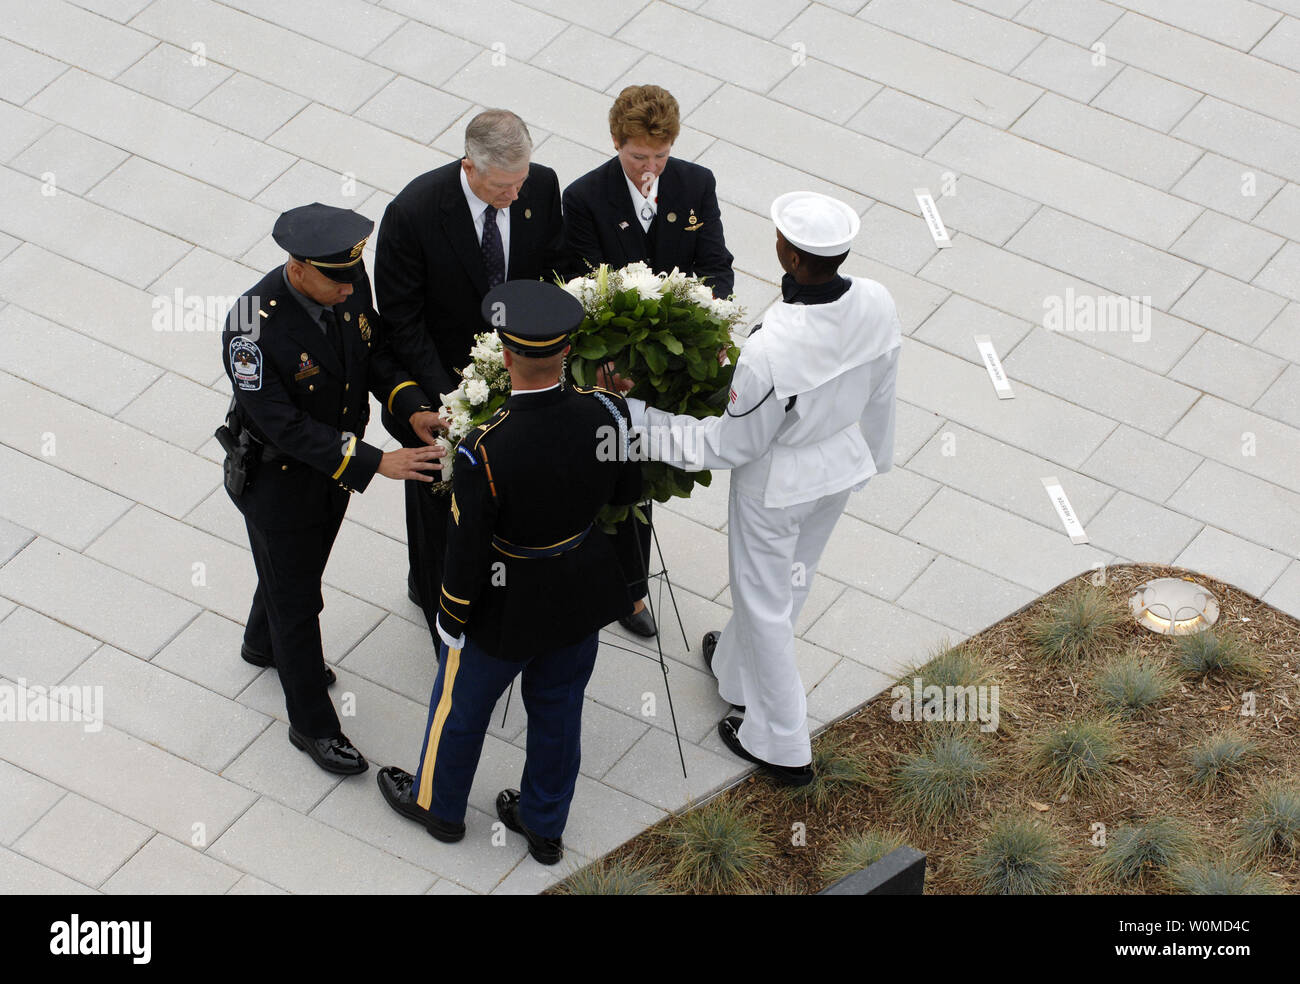 Former chairman of the Joint Chiefs of Staff Retired U.S. Air Force Gen. Richard B. Myers (2nd L), American Airlines flight attendant Deborah Maitland-Rowland (2nd R) and Lt. David Webster, a Pentagon Force Protection Agency officer (L) place a wreath during the dedication ceremony for the Pentagon Memorial on the seventh anniversary of the September 11, 2001 terrorist attacks on the Pentagon and the World Trade Center in New York City, at the Pentagon in Arlington, Virginia on September 11, 2008. (UPI Photo/Jennifer Villalovos/U.S. Navy) - Stock Image